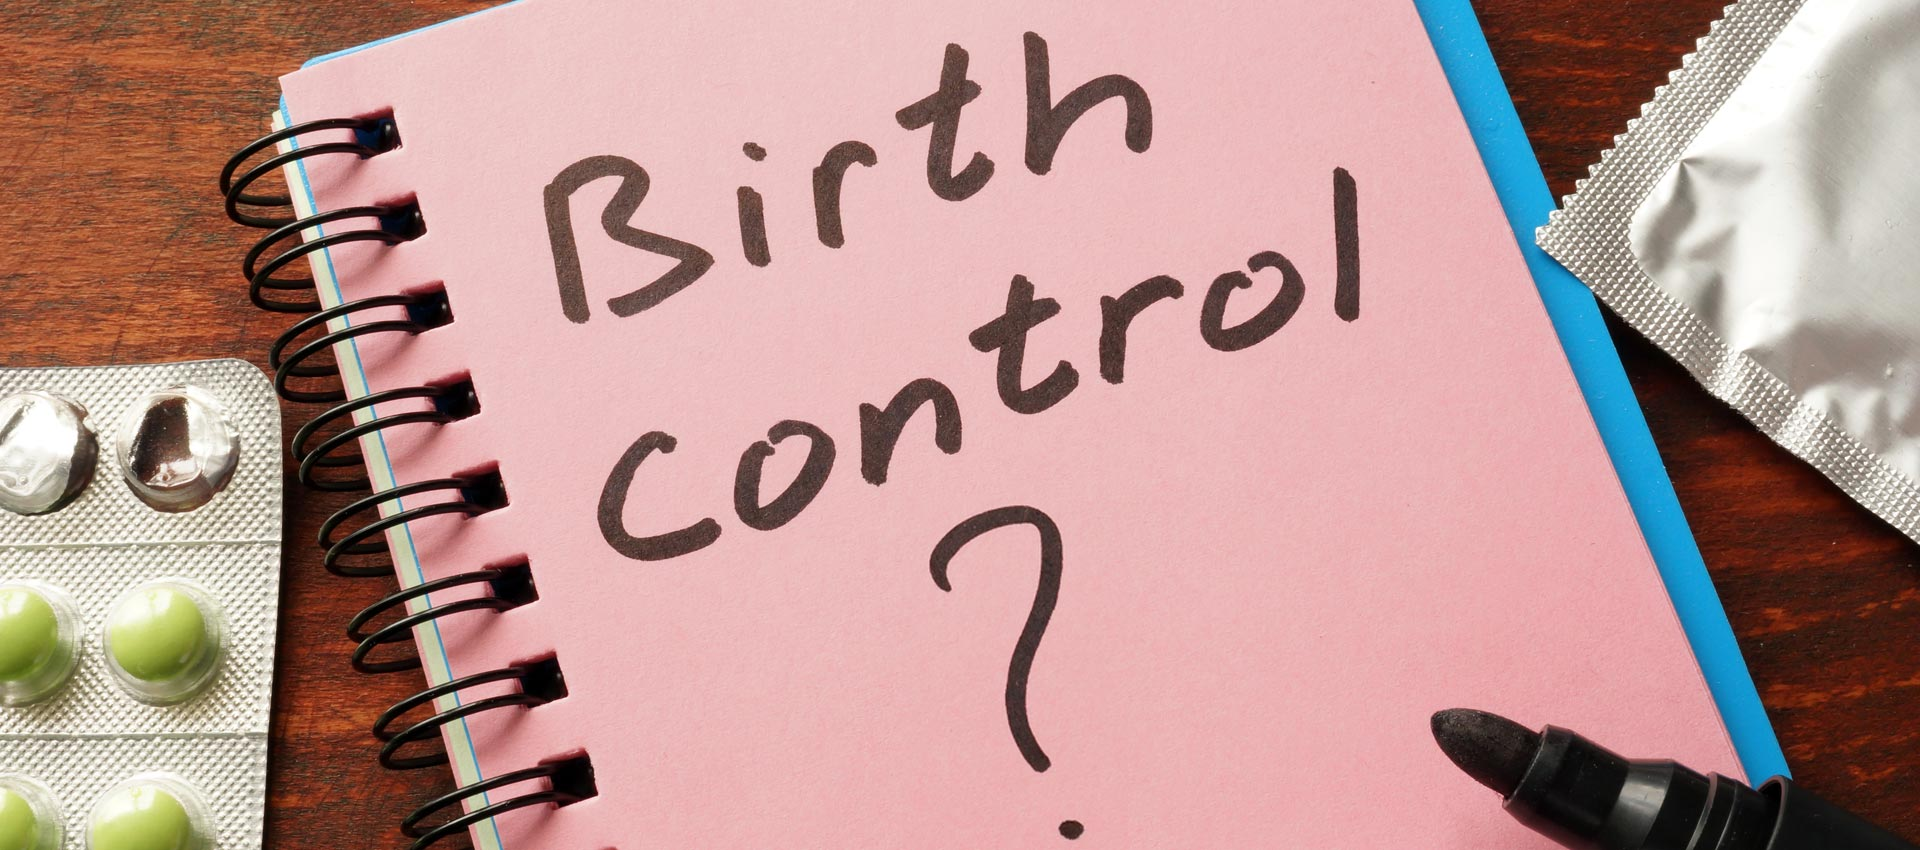 contraception education image 1